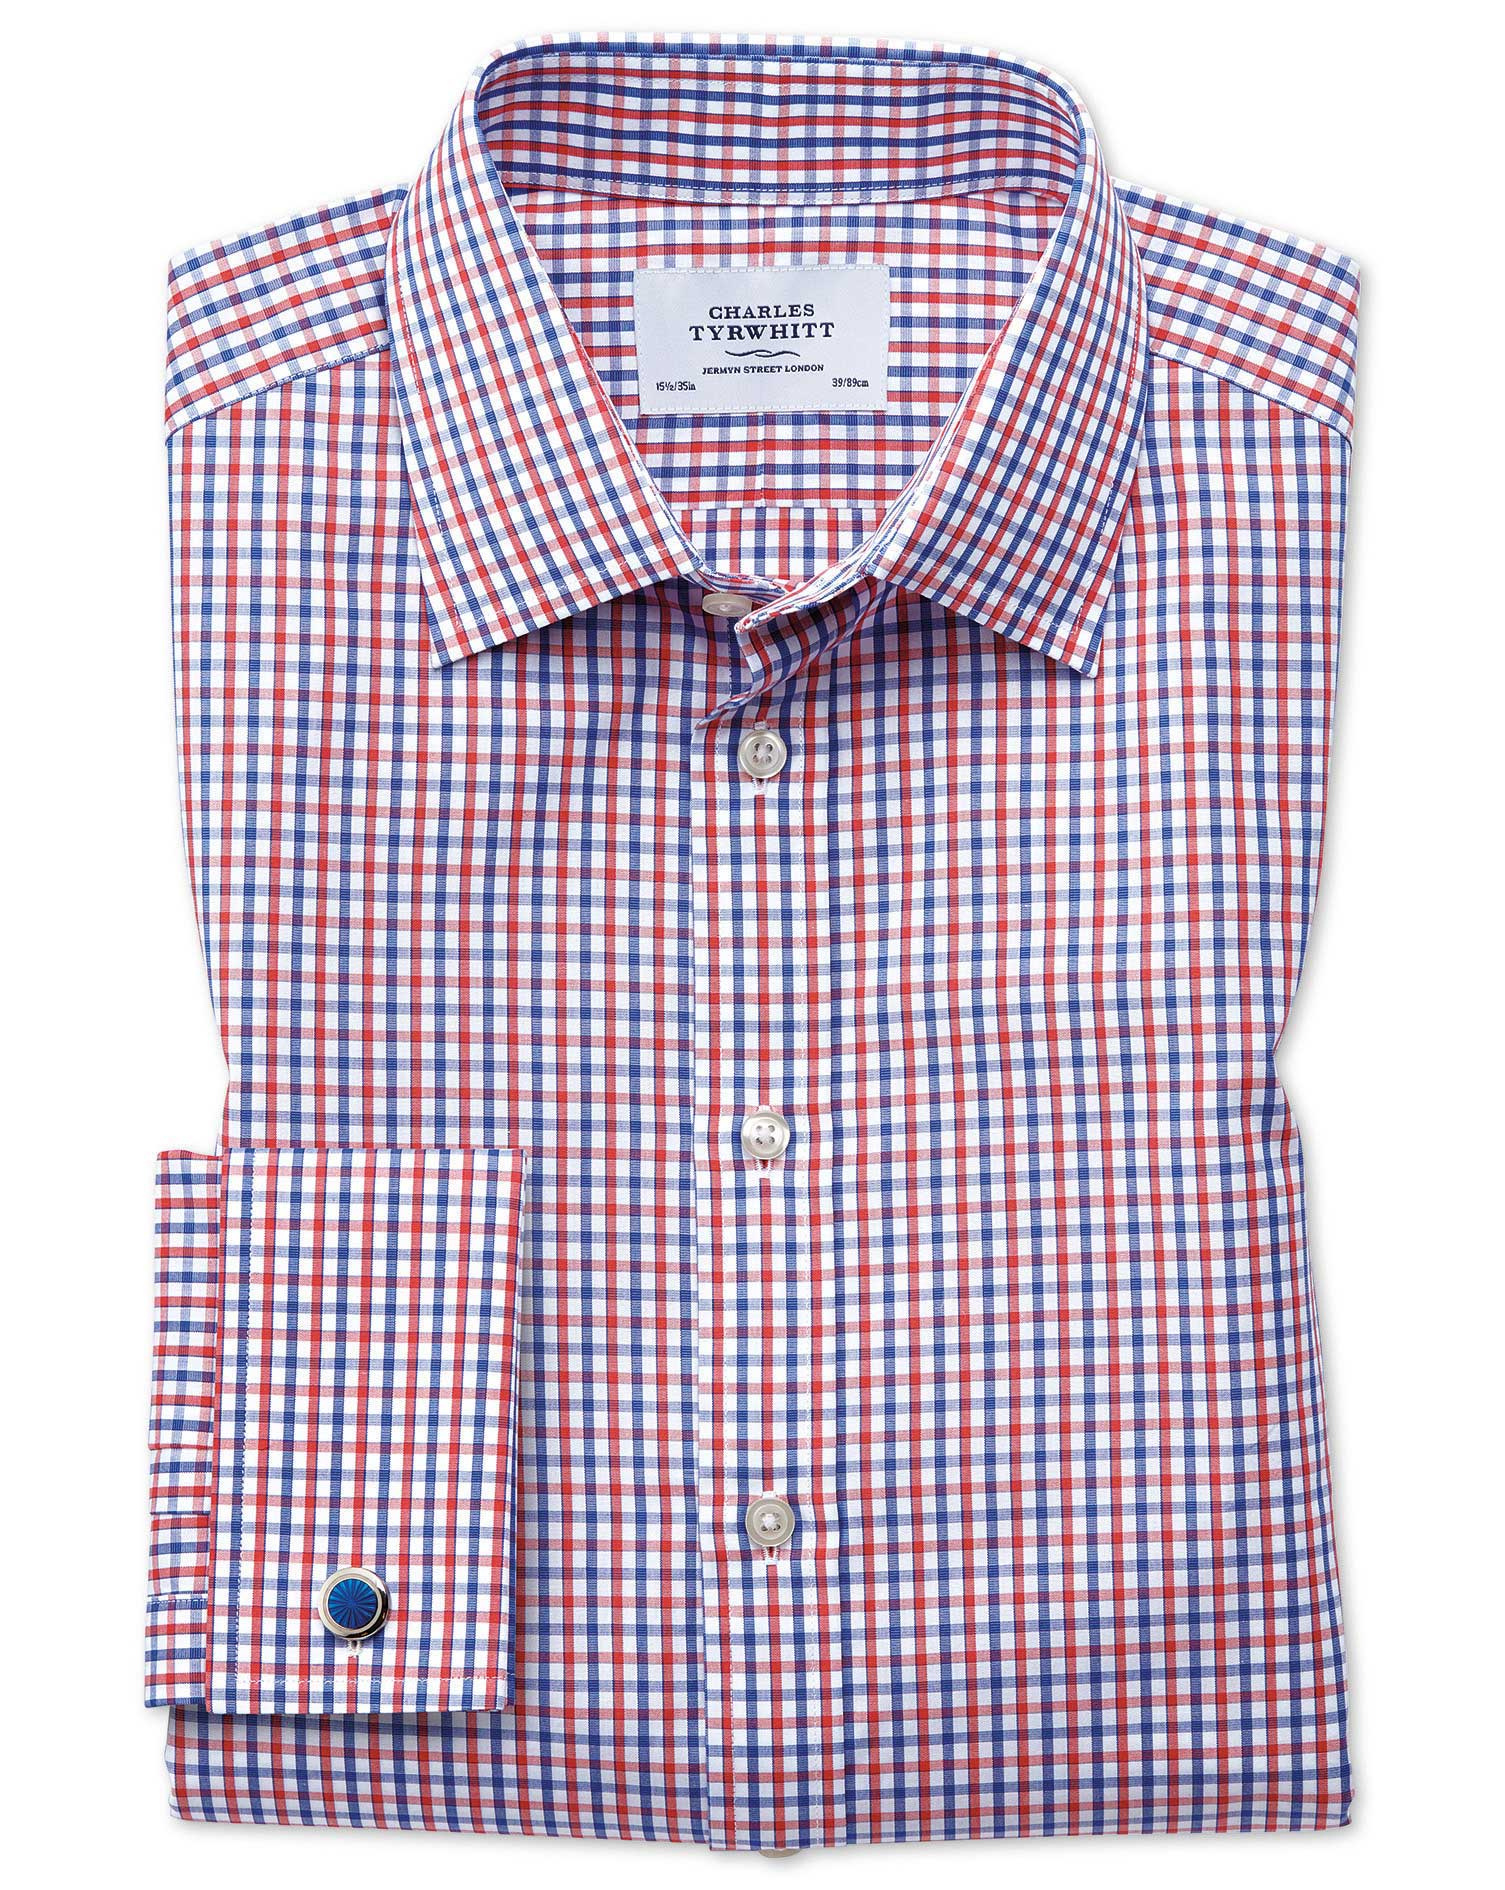 Slim Fit Two Colour Check Red and Blue Cotton Formal Shirt Single Cuff Size 15.5/34 by Charles Tyrwh